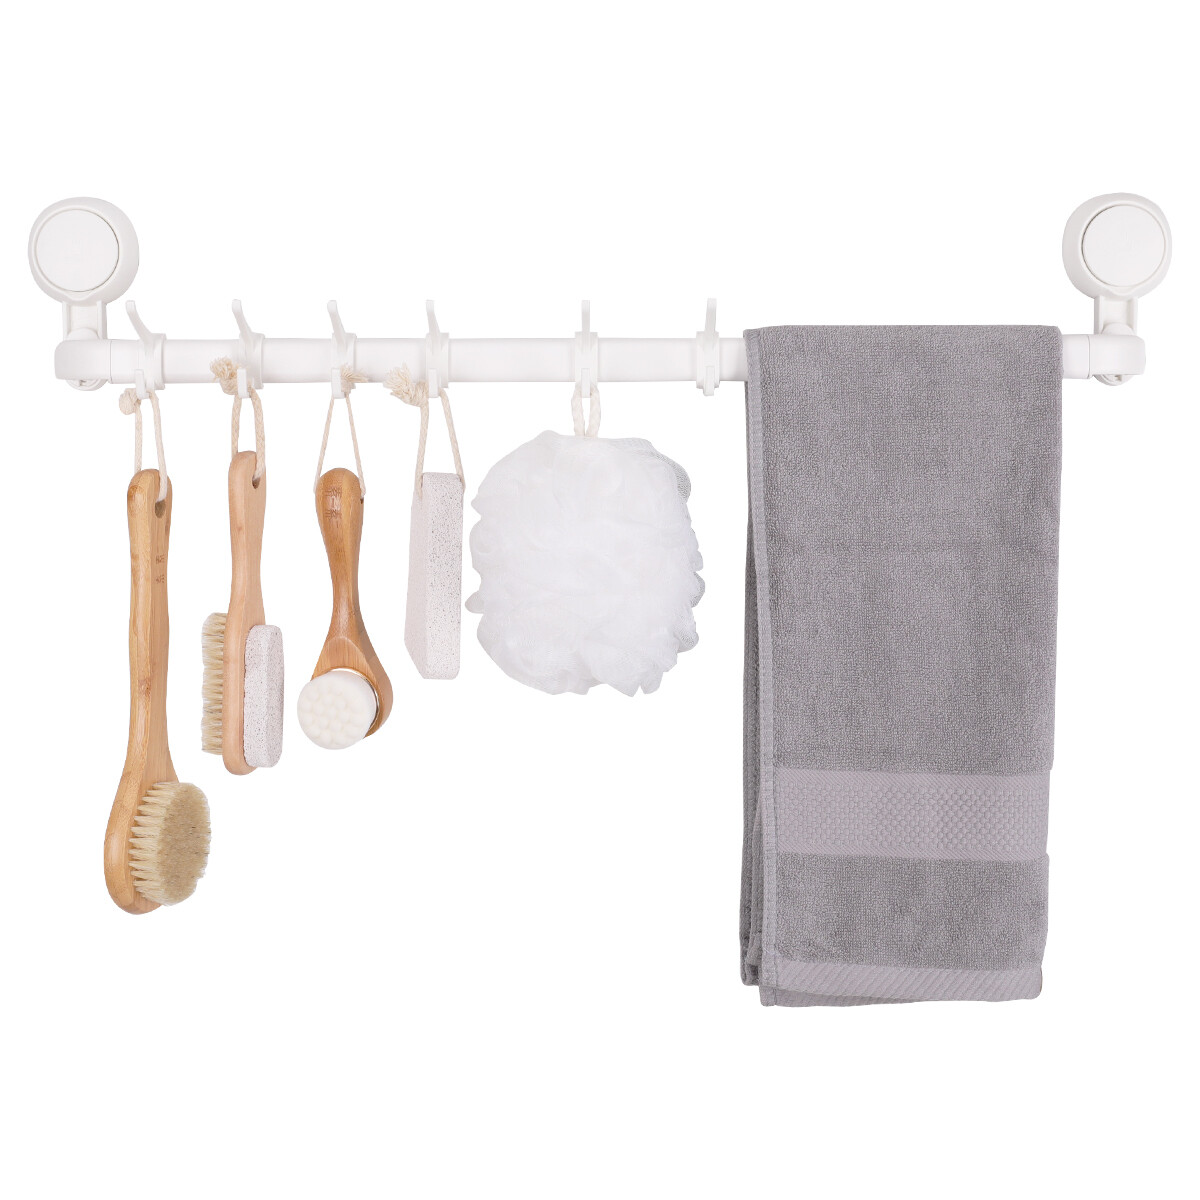 MYKE Suction Cup Towel Rack